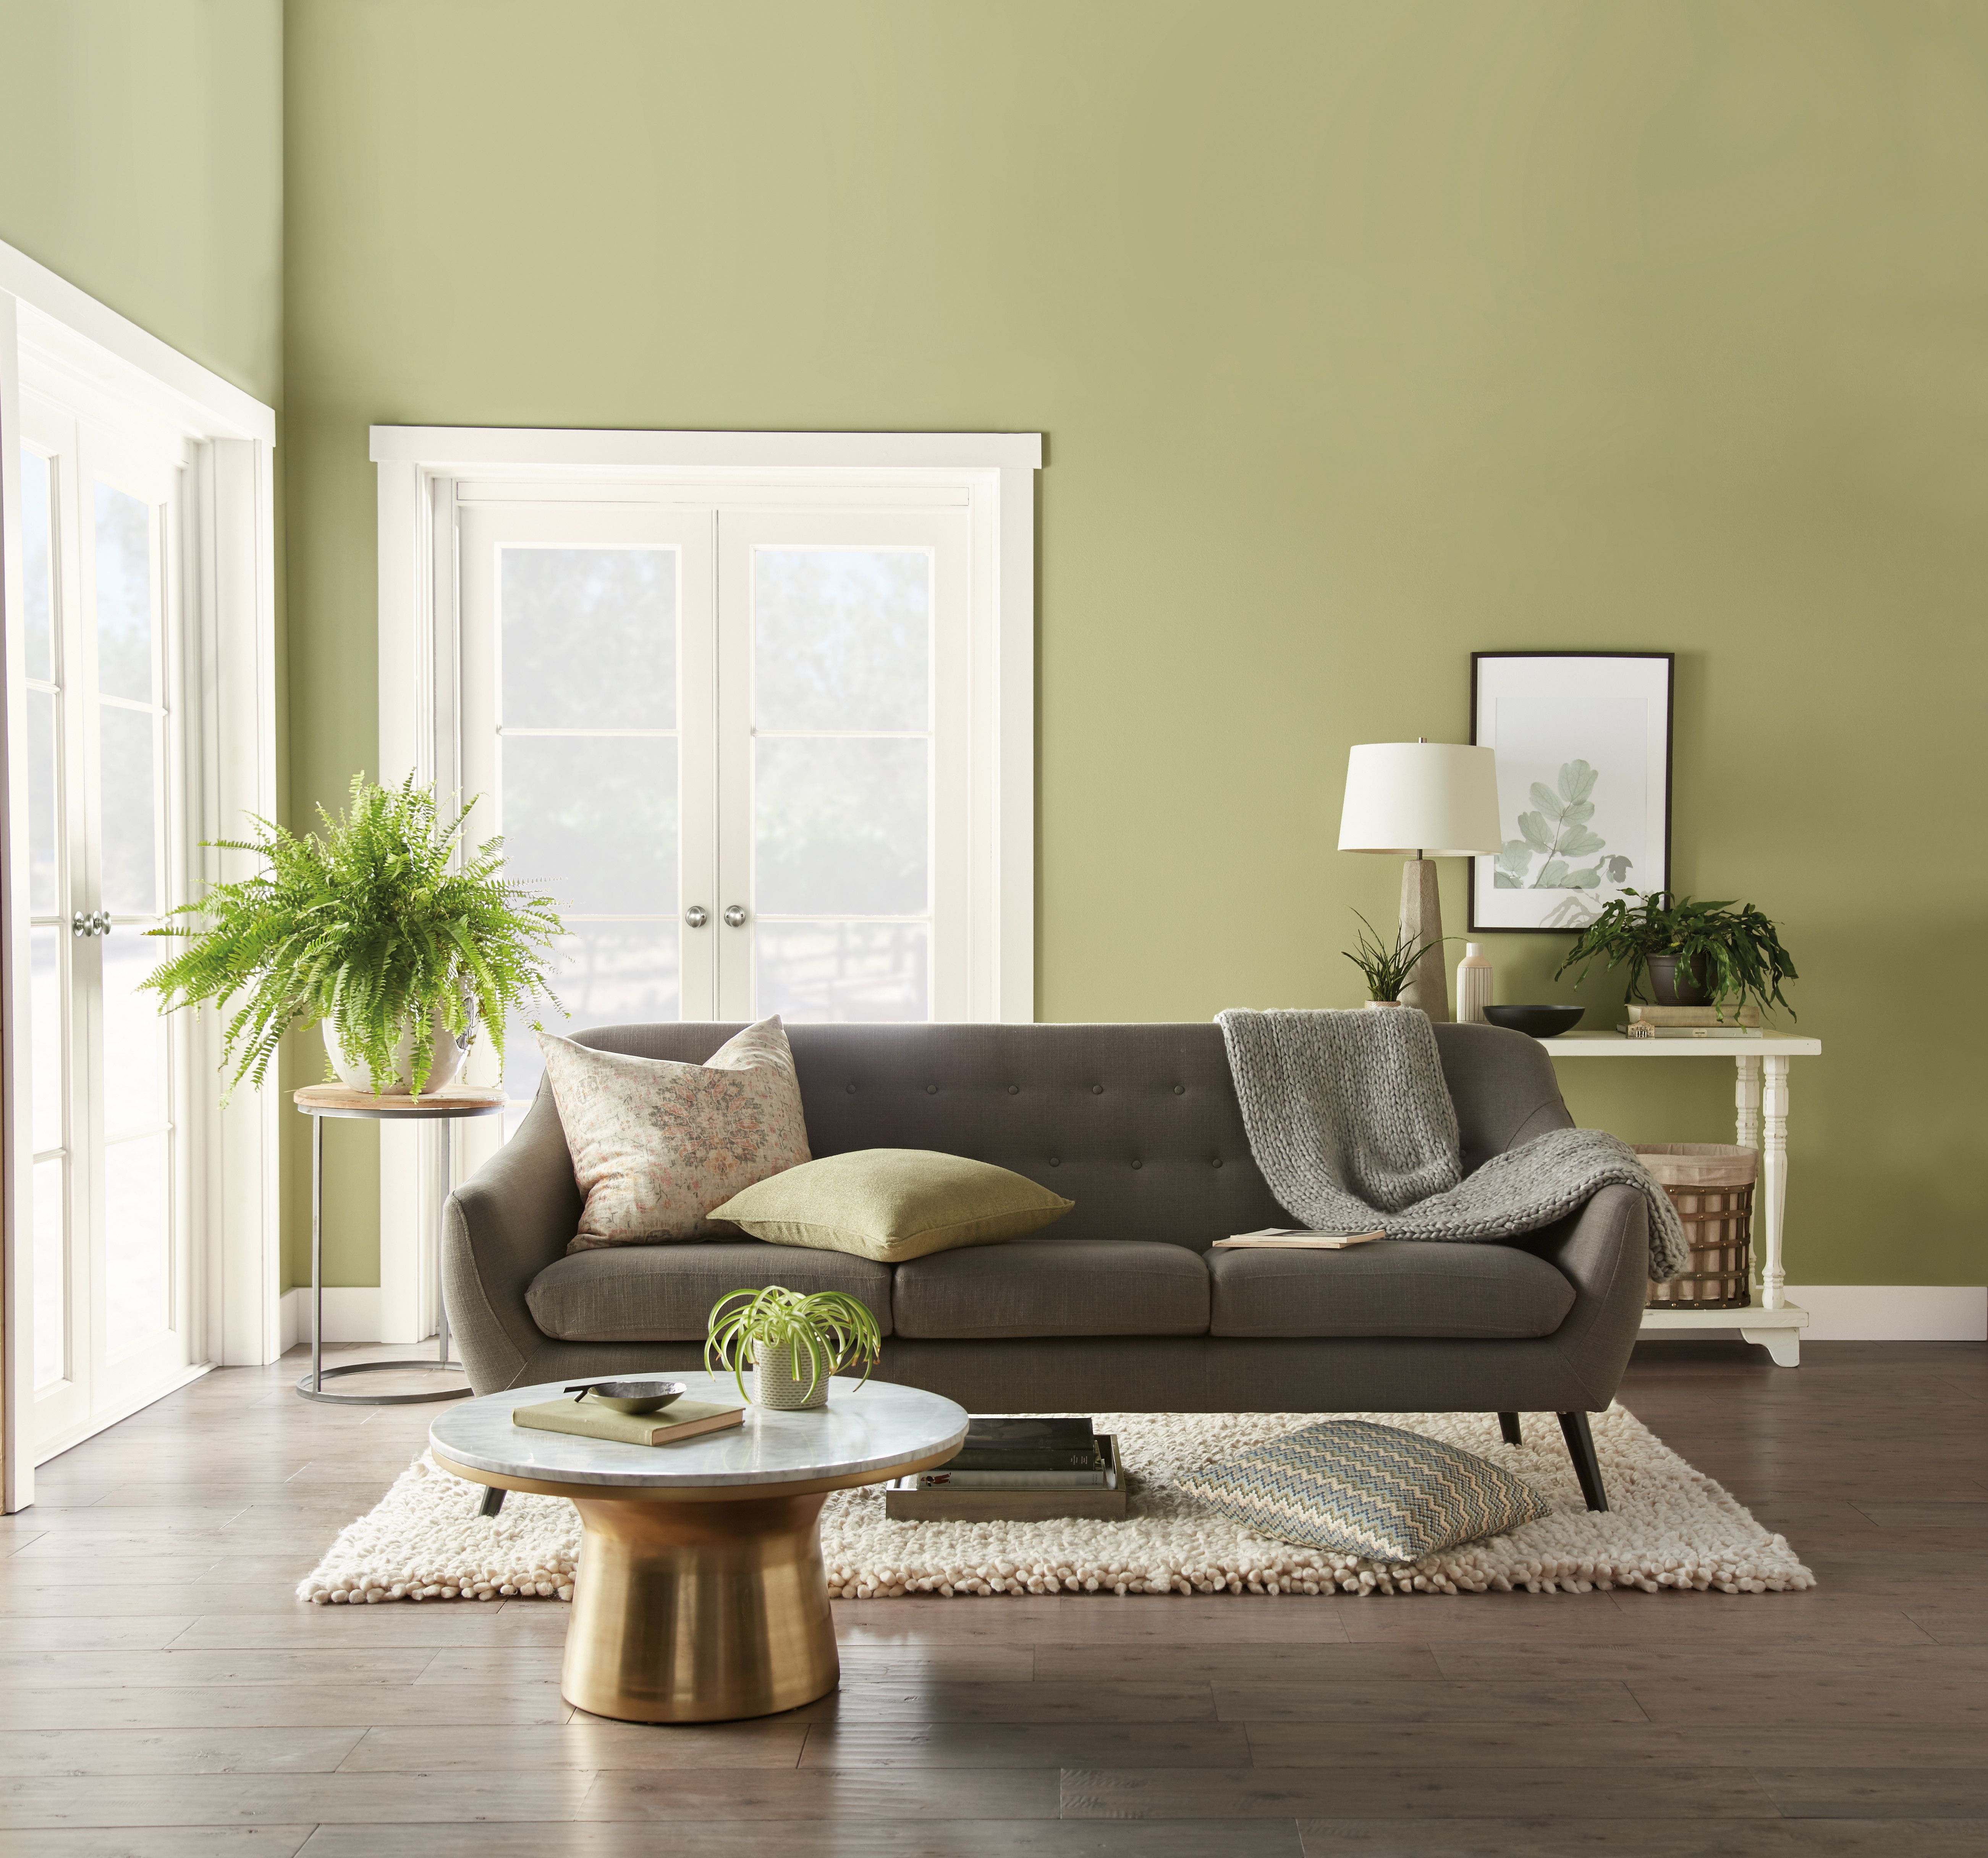 Behr Paint 2020 Color Of The Year Back To Nature S340 4 New Paint Color Of The Year